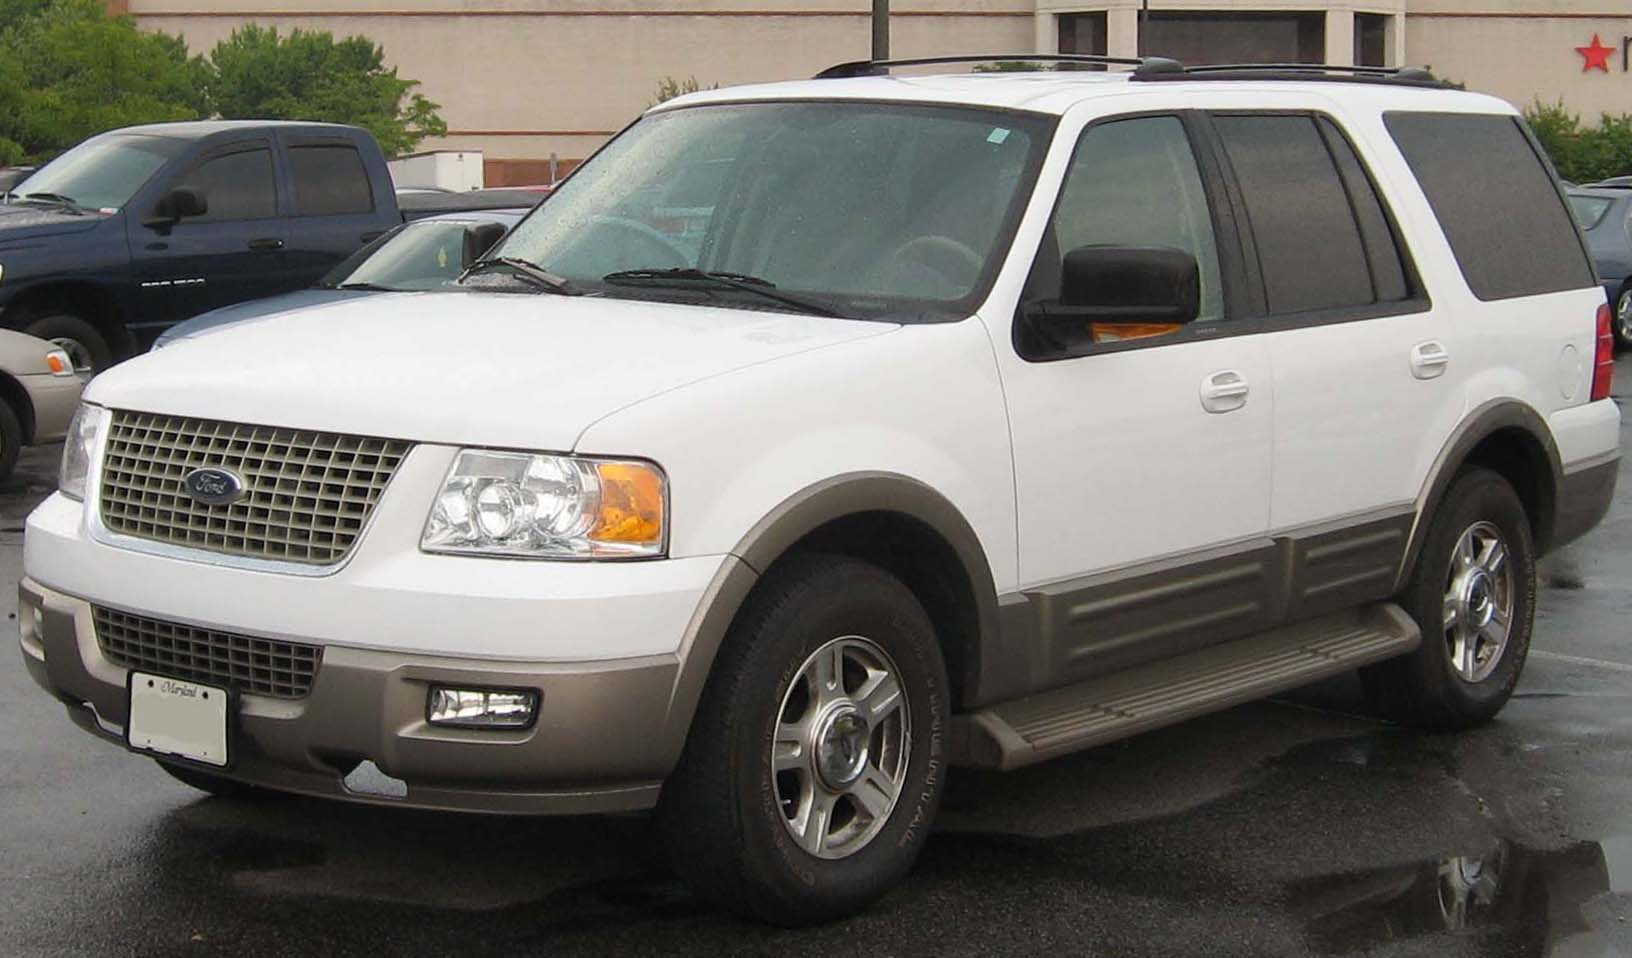 2002 ford expedition image 16